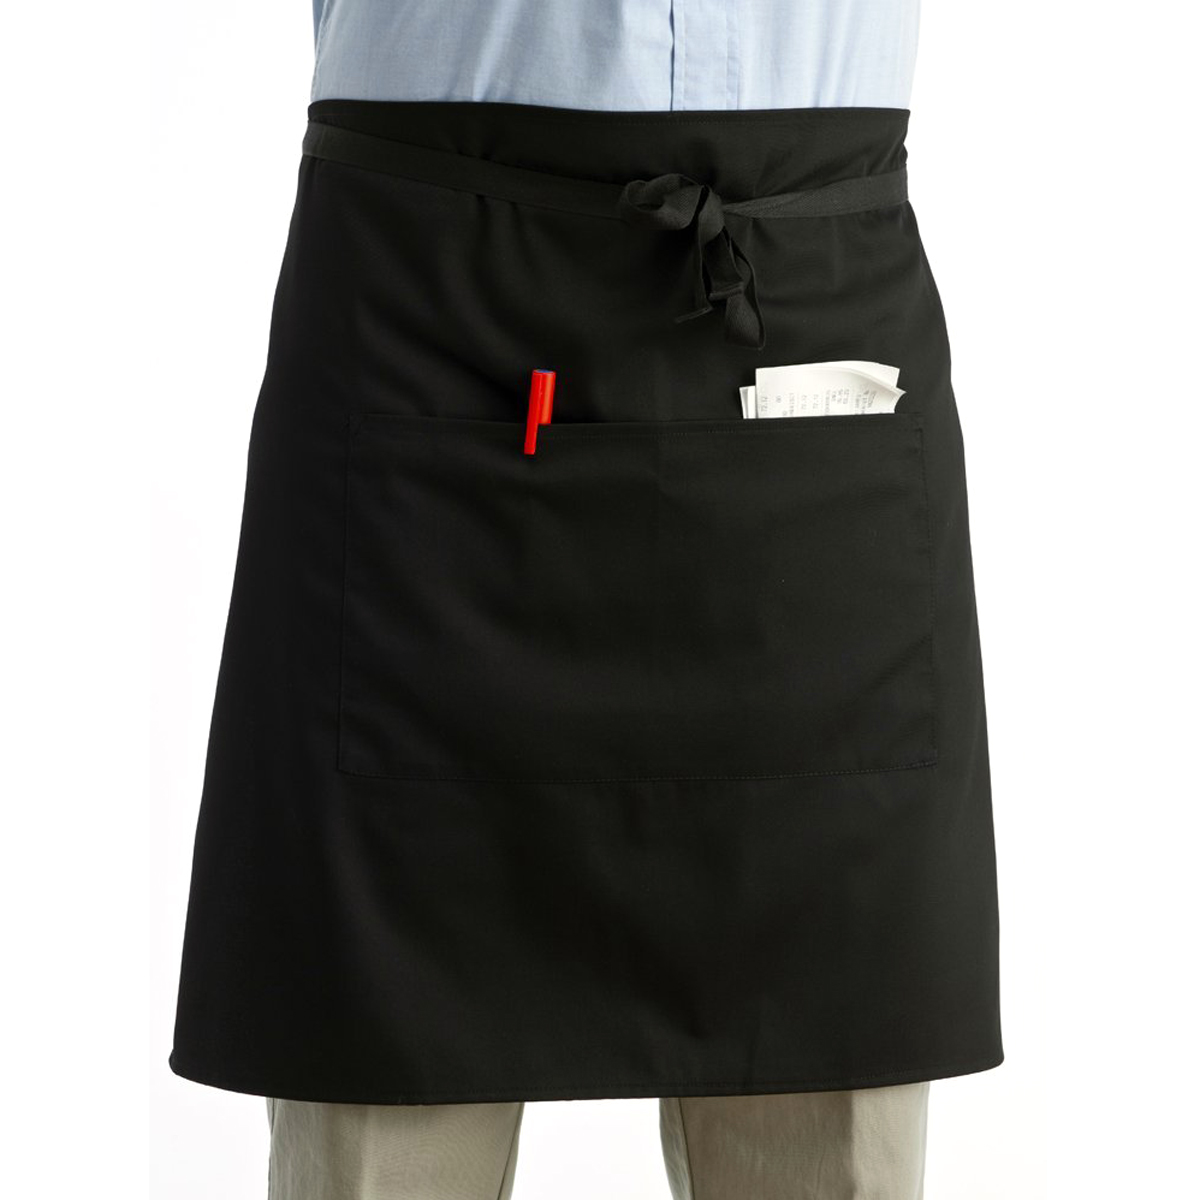 Universal Unisex Kitchen Cooking hotel chef aprons chef uniforms Waist Apron Short Apron Waiter Apron with Double Pockets(China (Mainland))